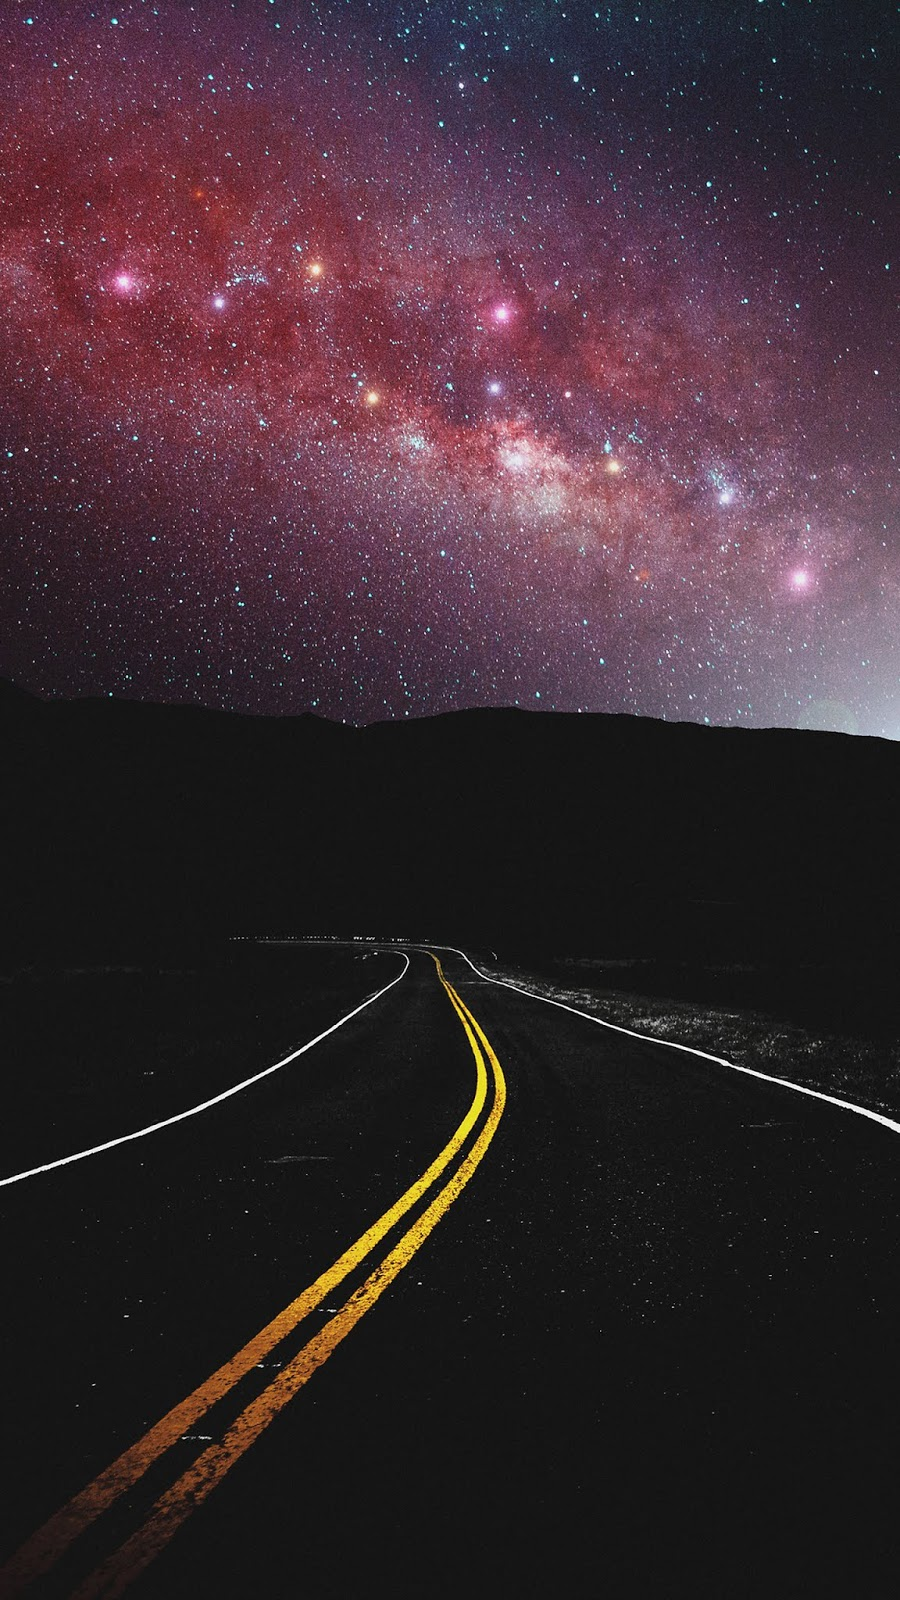 Road in the night sky